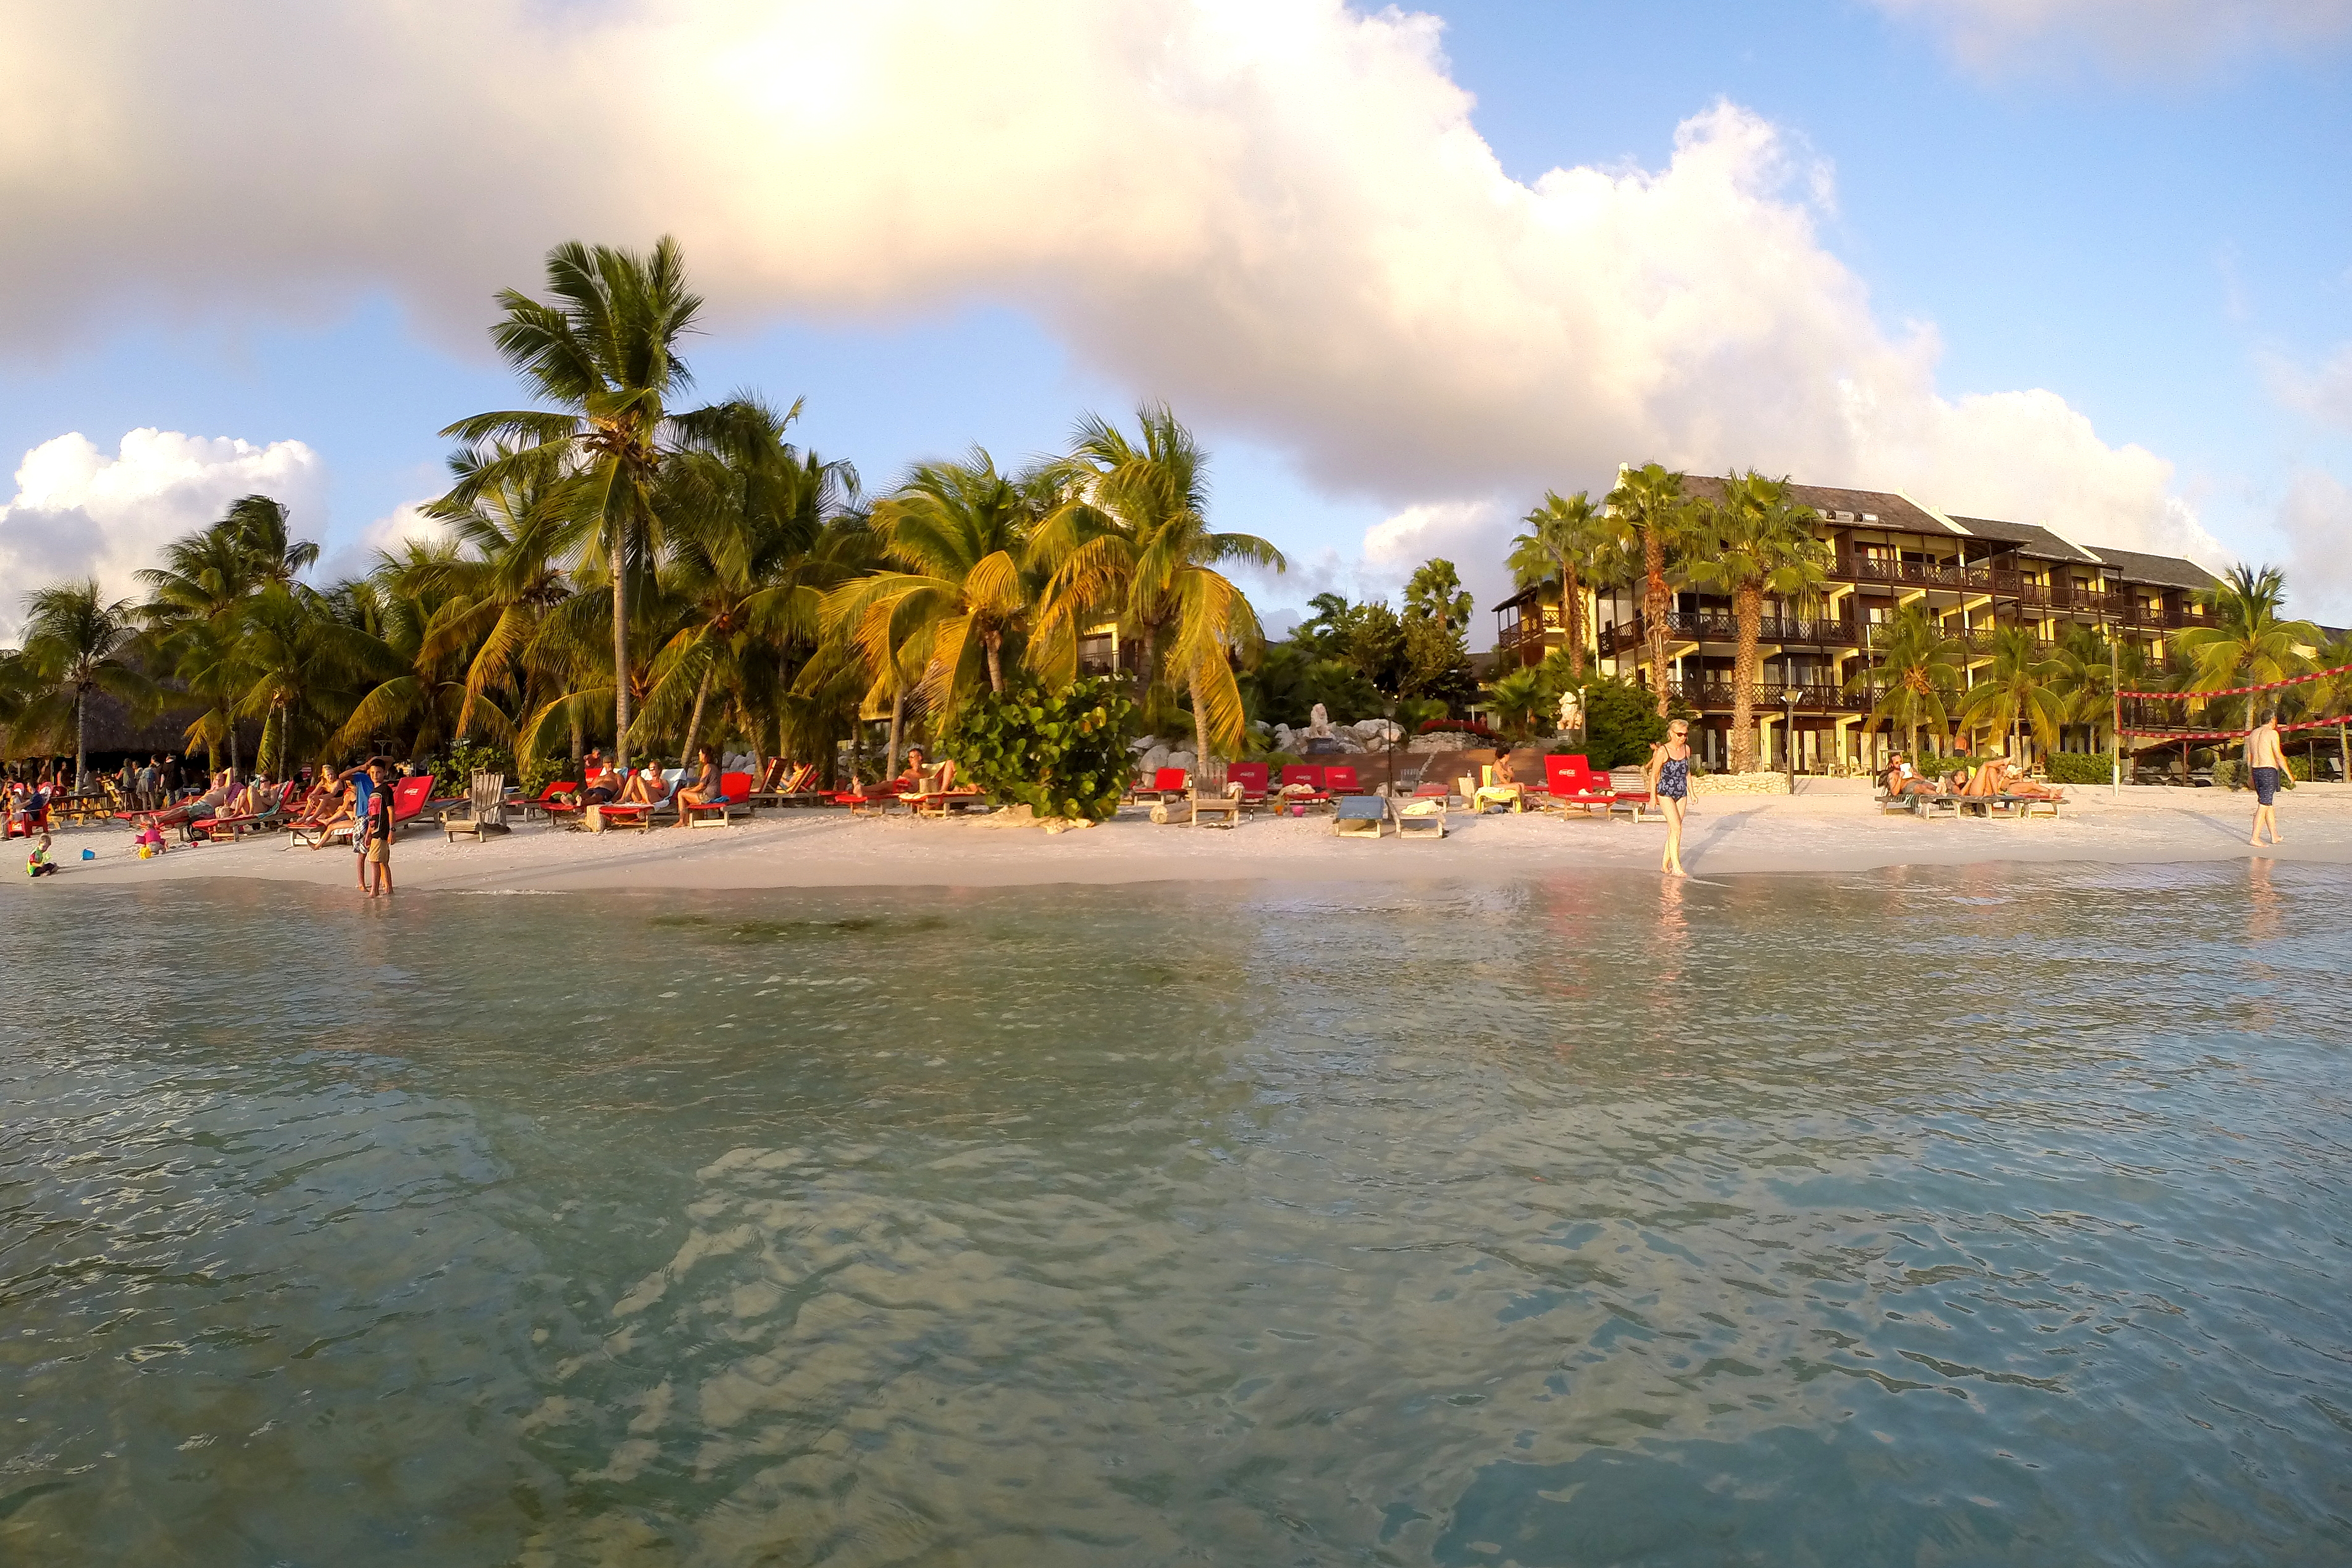 Our experience at the Lions Dive & Beach Resort, Curacao